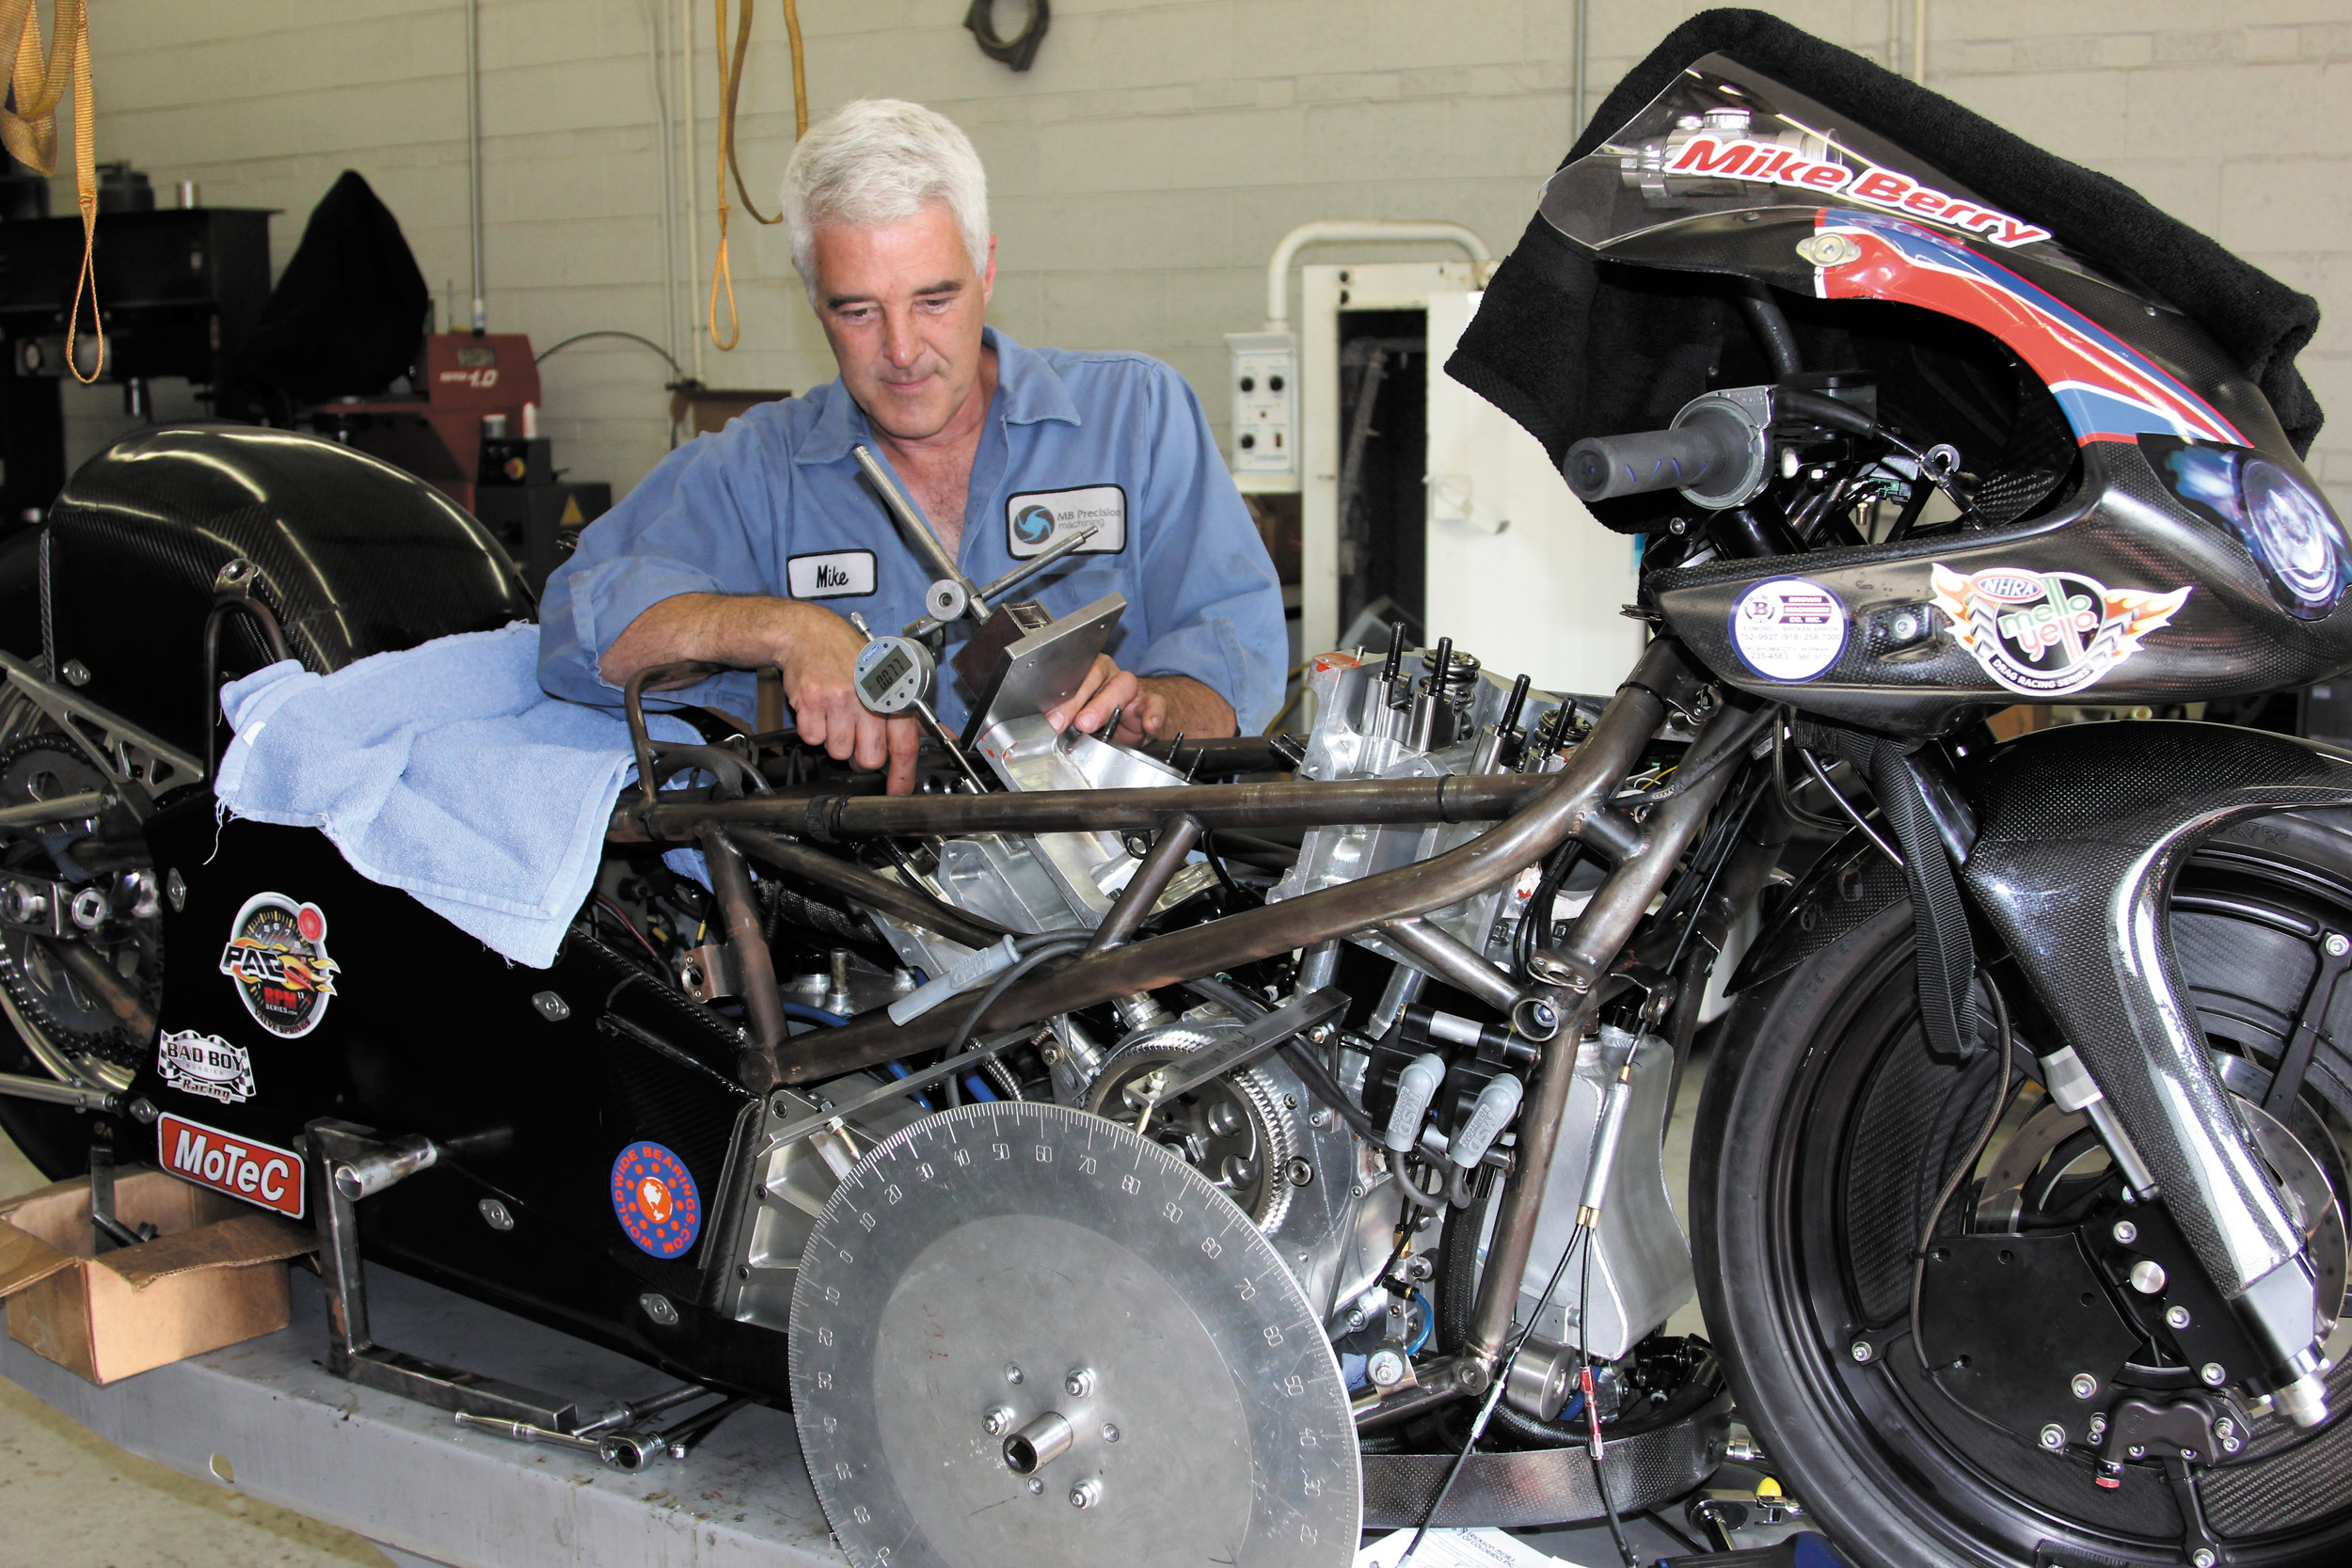 Mike Berry works on assembling the motor on his pro stock motorcycle. Berry manufactures many of the parts for the motor and runs tests on the engine in his Englewood shop. He said he has been struggling to make his bike competitive. He said he hopes to be ready and qualify at the Mile High National Drag Races July 19-22 at Bandimere Speedway in Morrison.